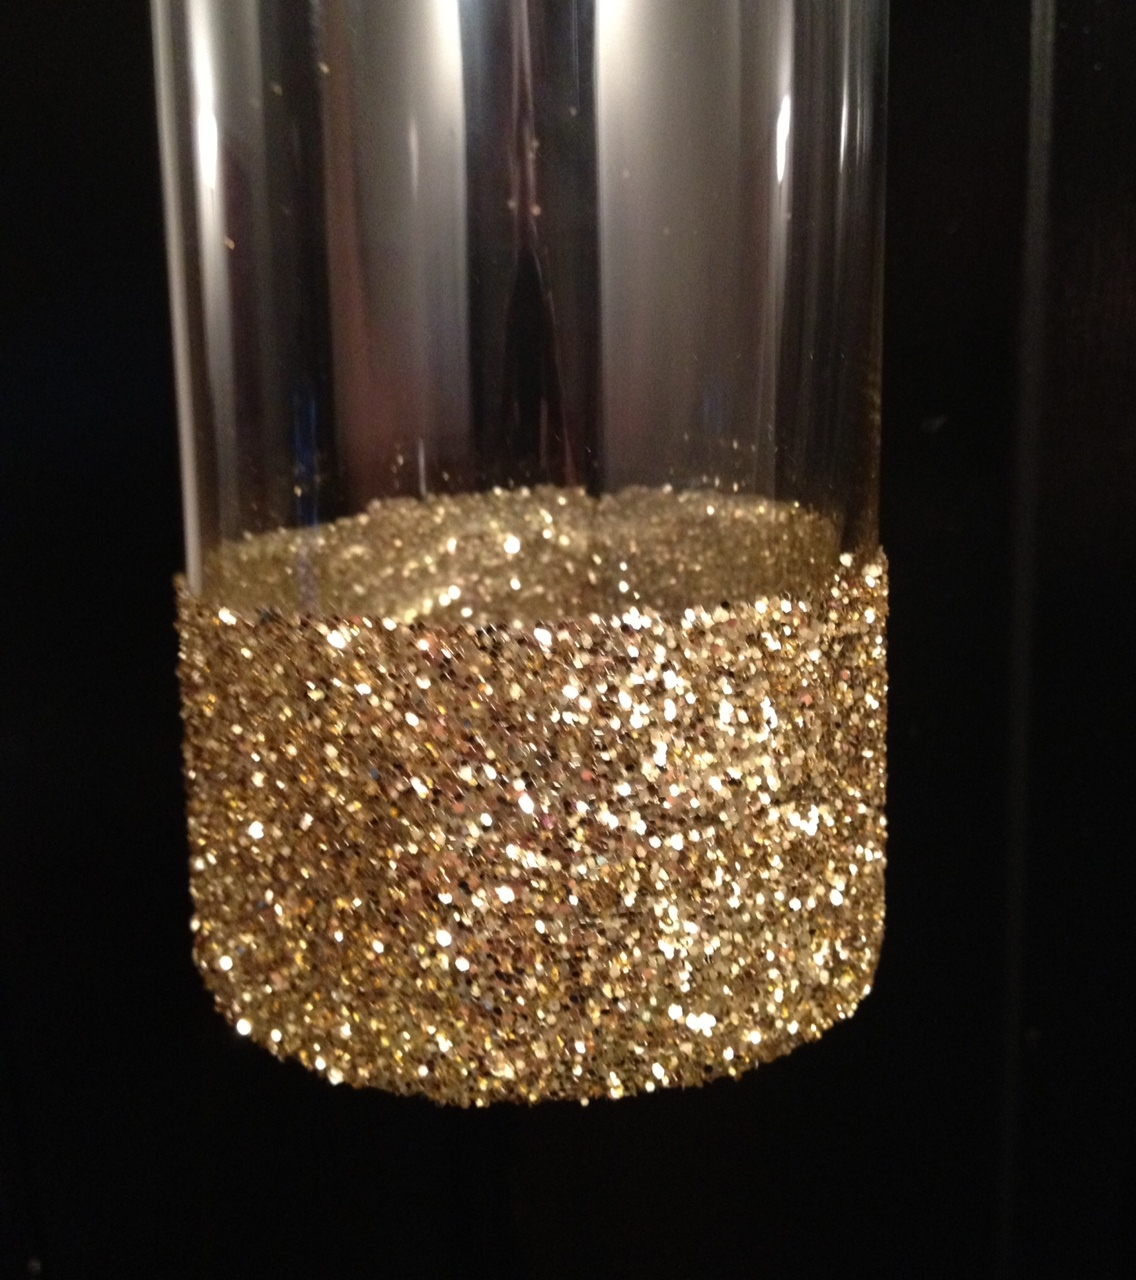 Diy glitter vases my simply perfect events diy glitter vases reviewsmspy